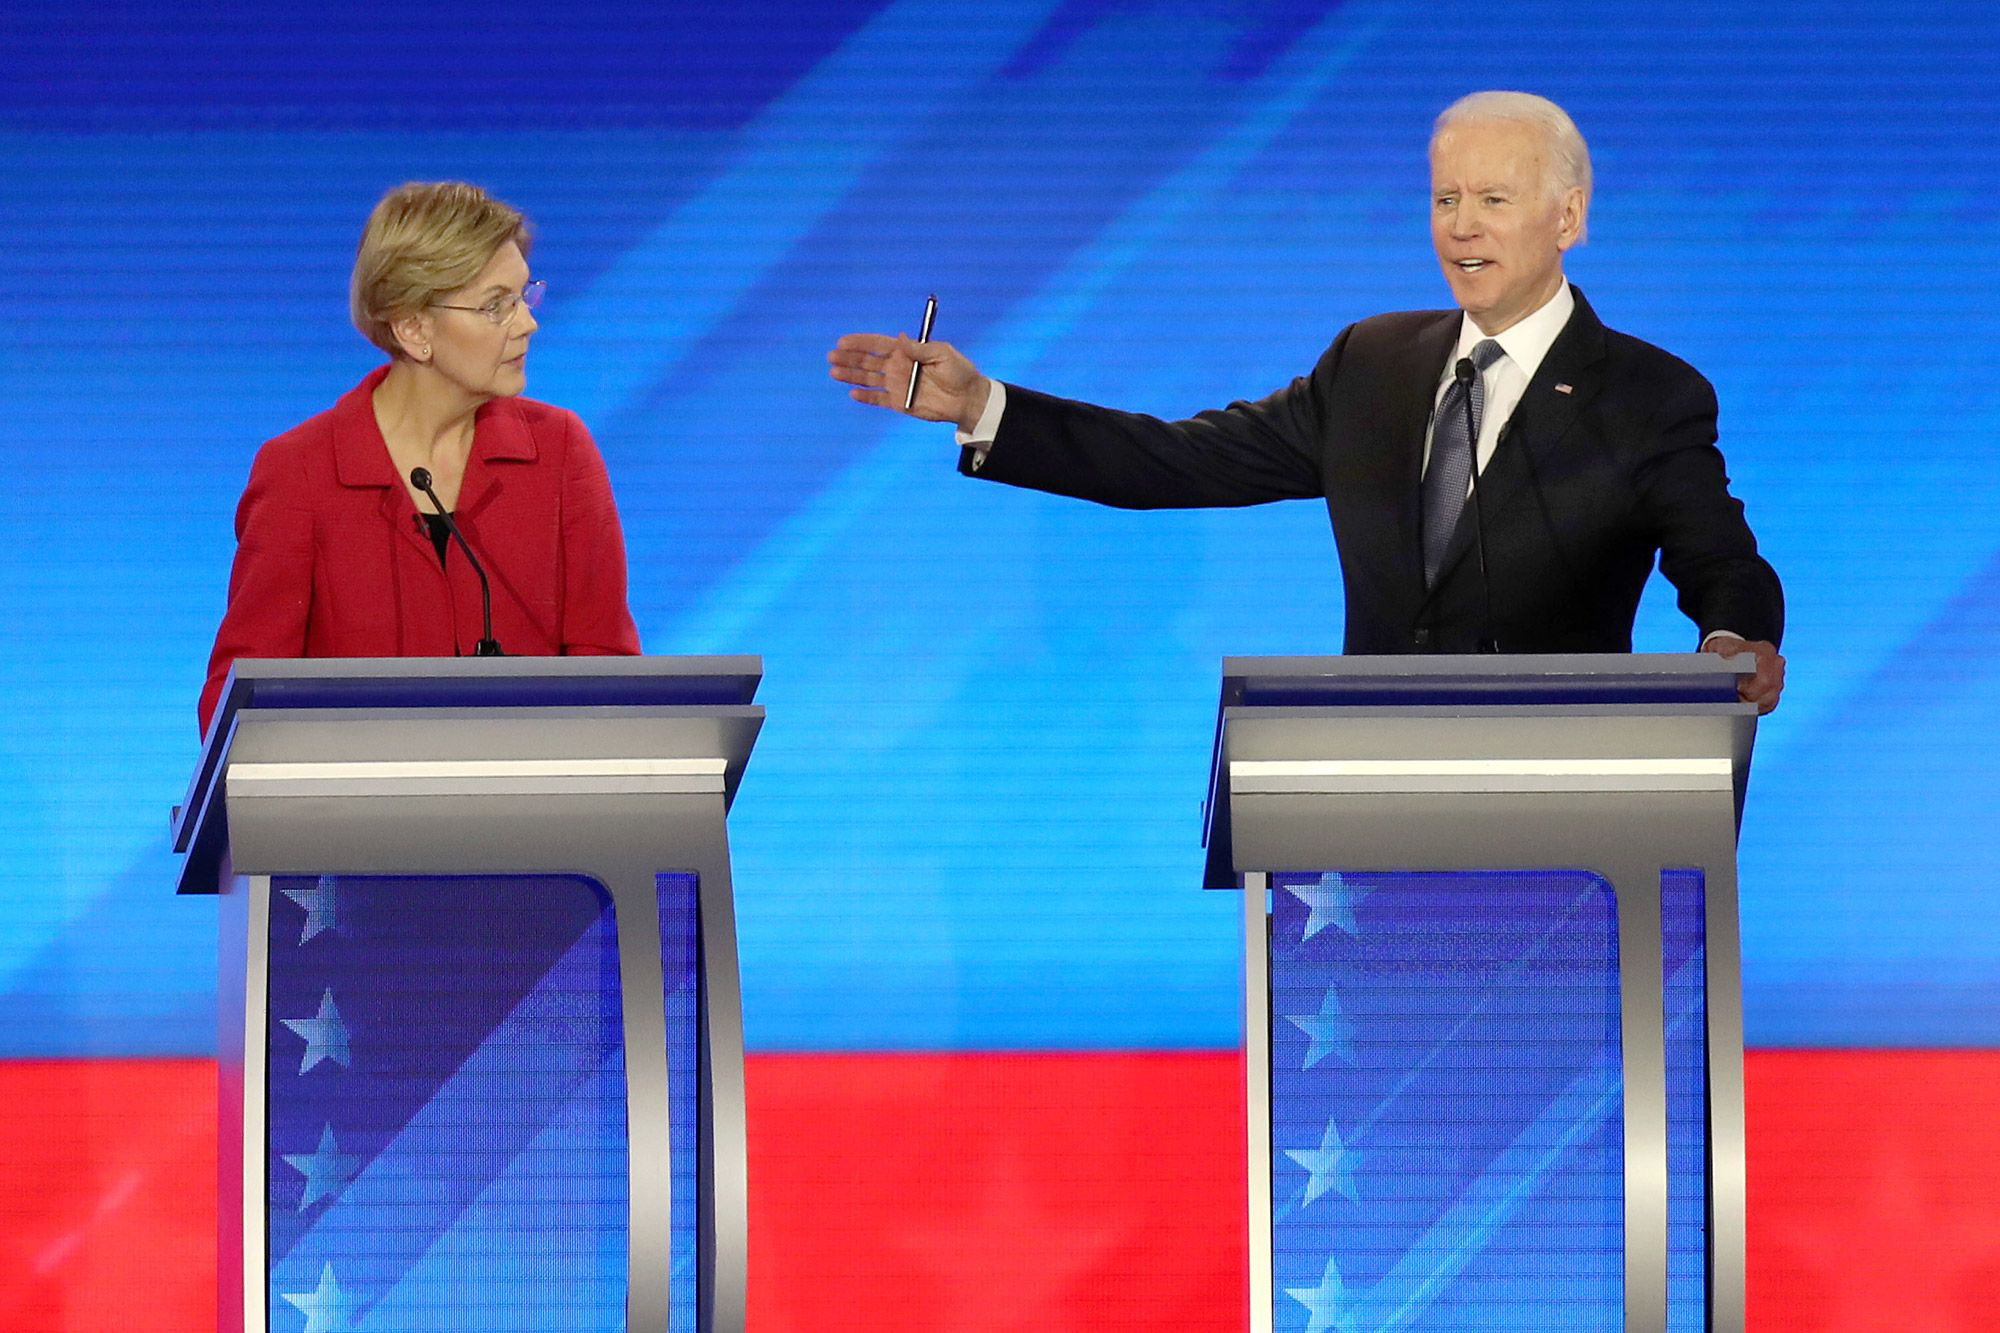 Iowa laggards Joe Biden and Elizabeth Warren shift ad spending to stay in the race